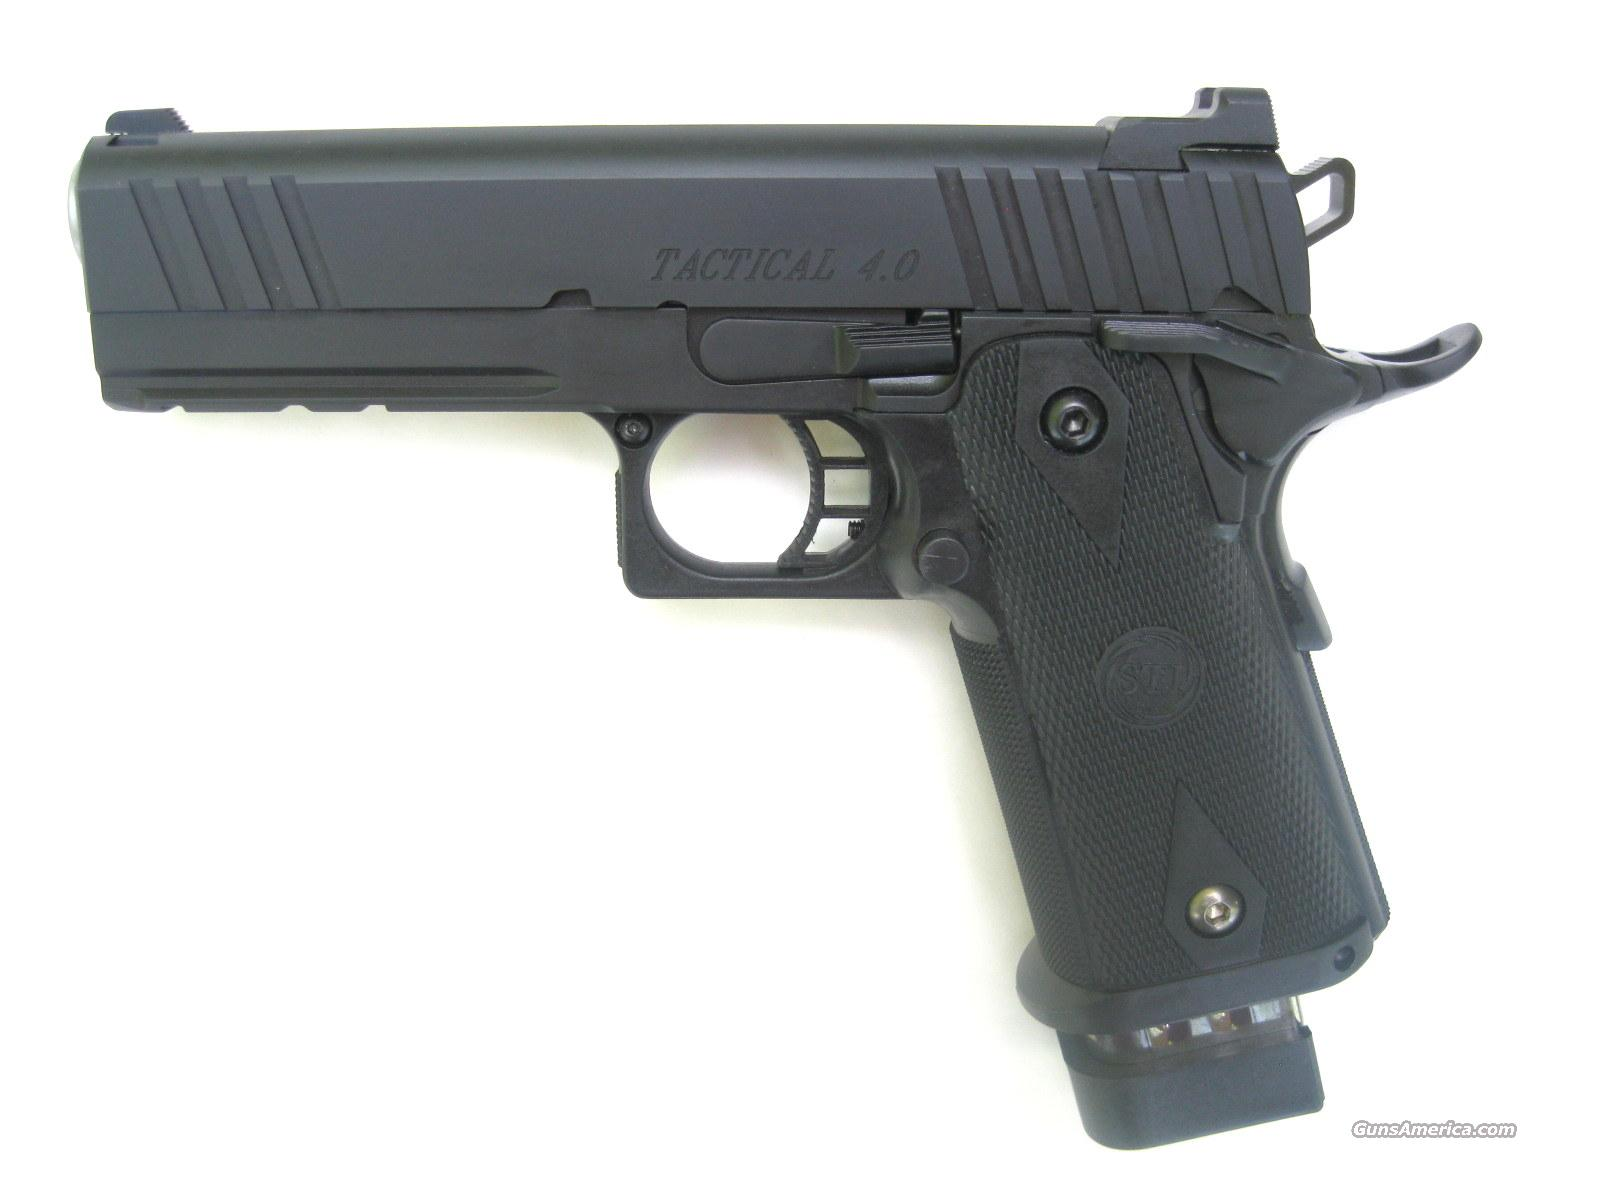 STI Tactical 4.0 9mm *NEW* Rail 2011 20 Round Hi-Cap  Guns > Pistols > STI Pistols